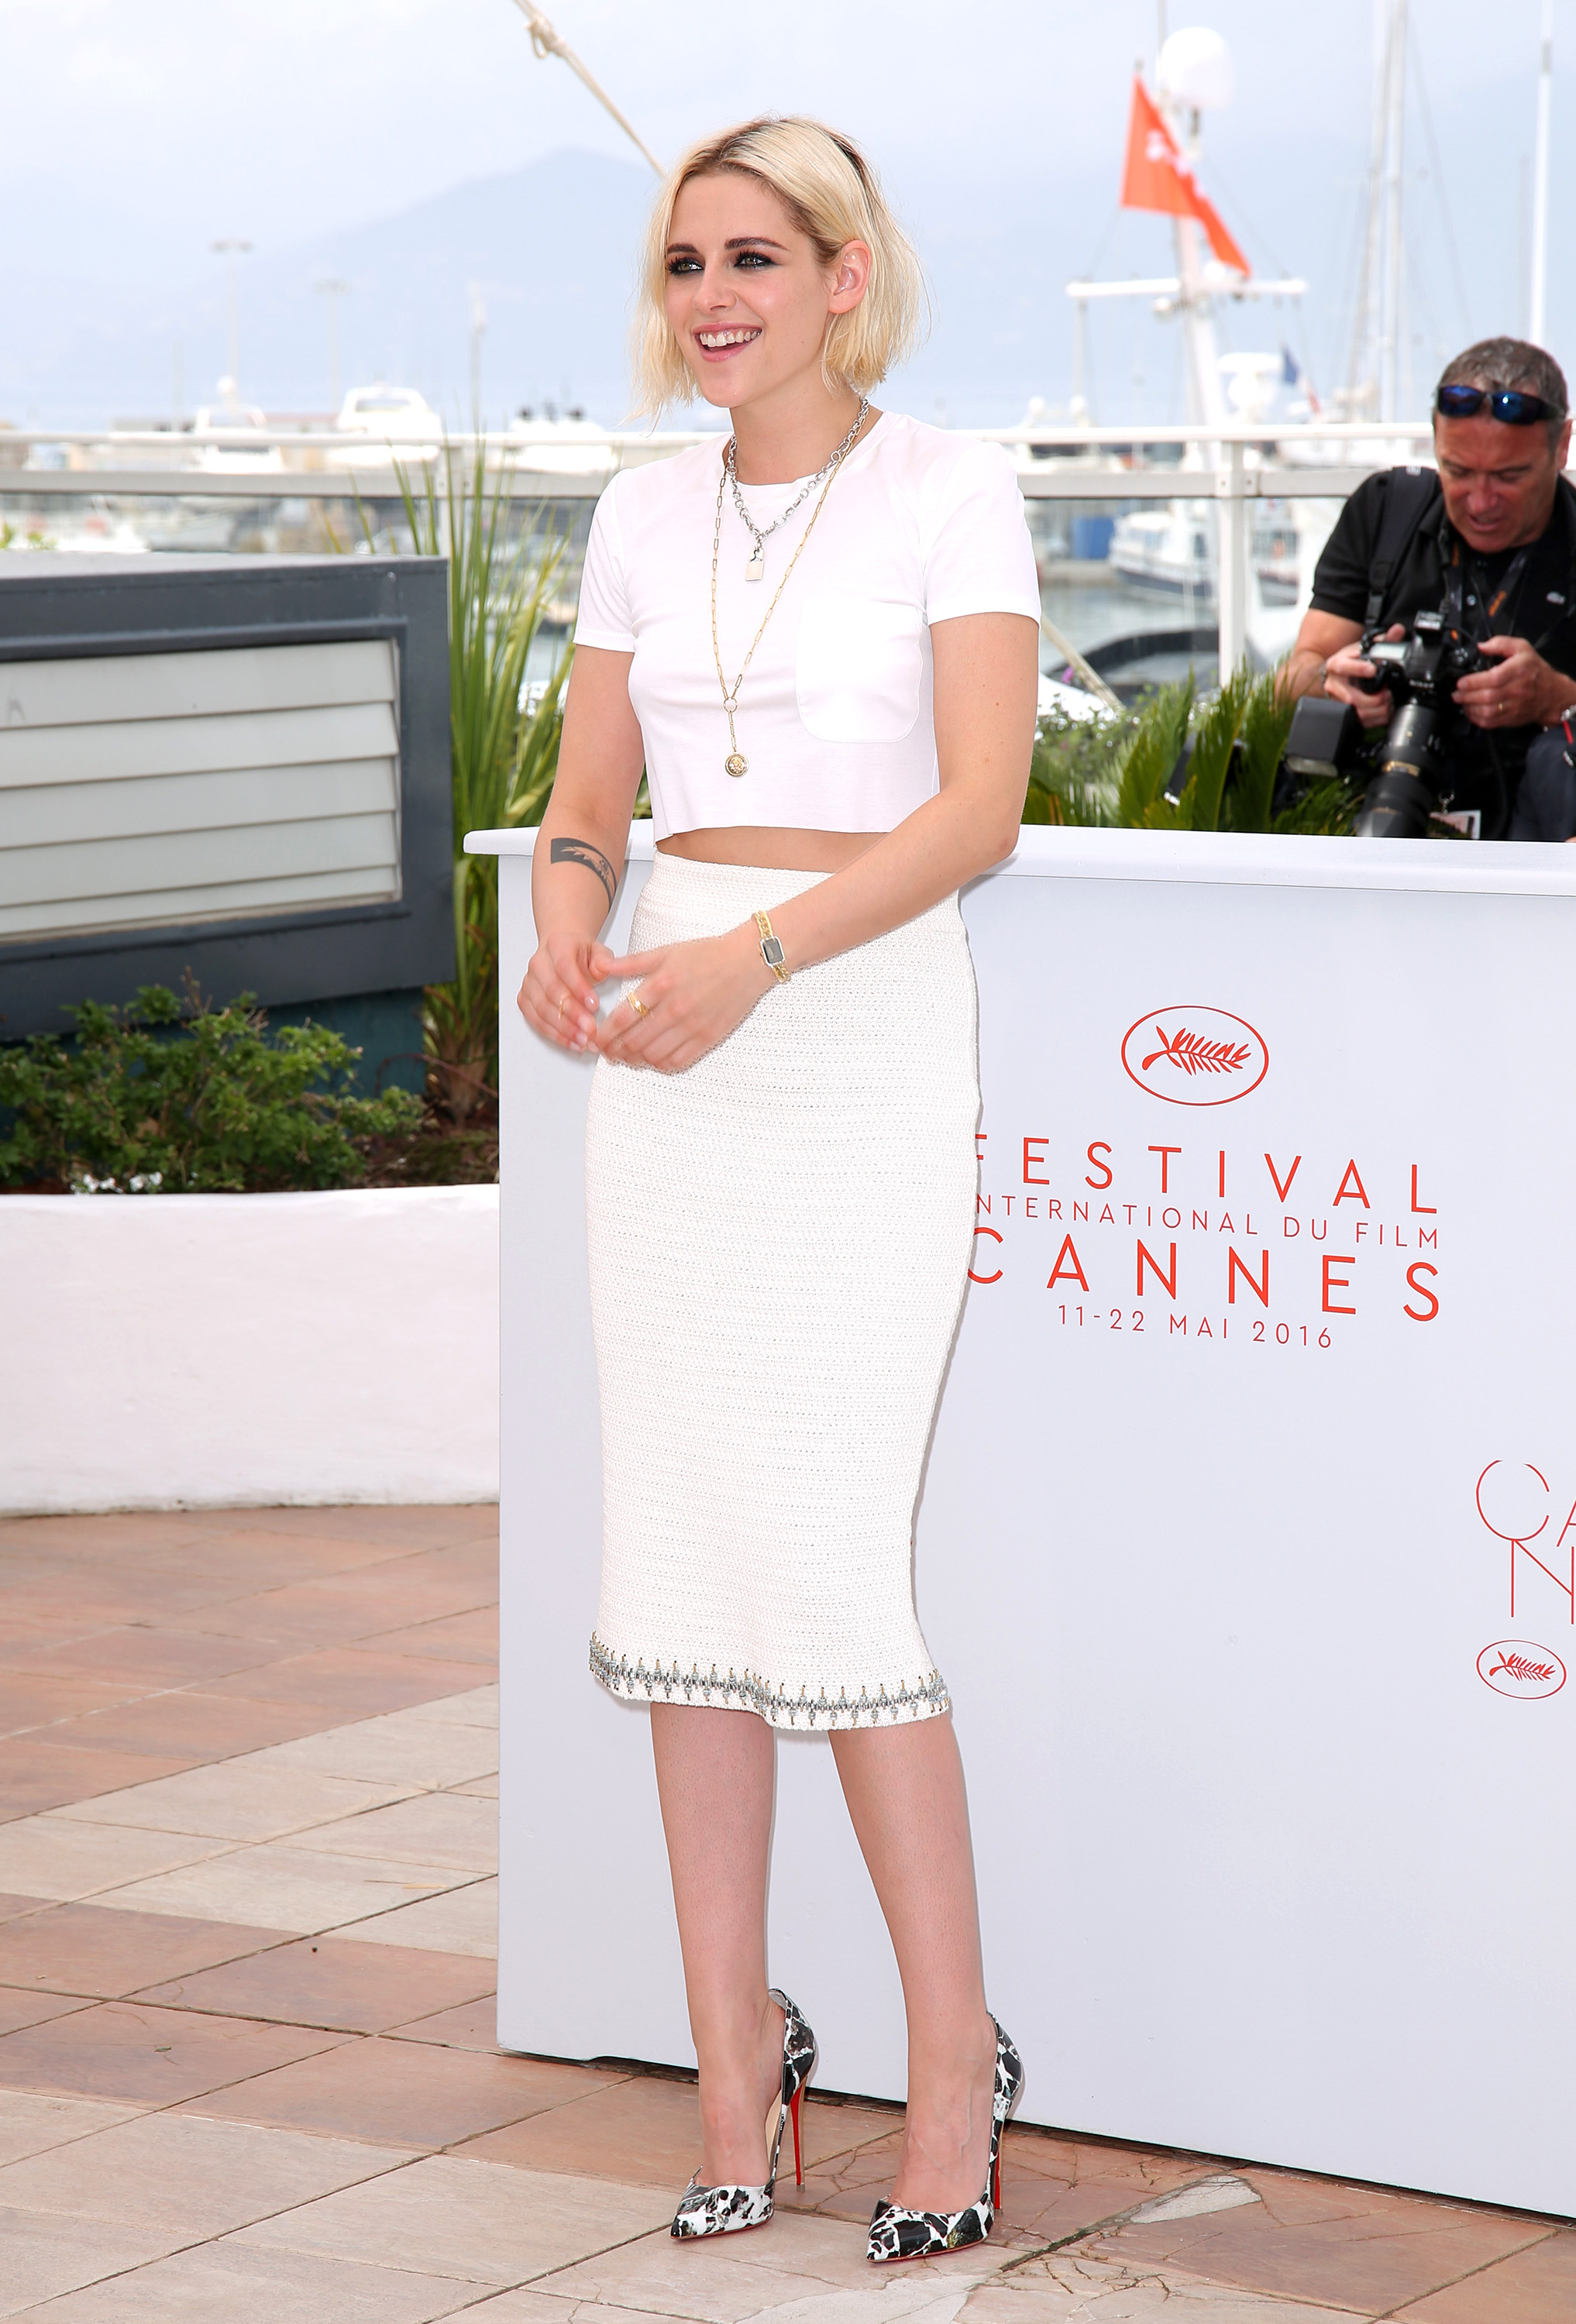 10 jaw-dropping Cannes Film Festival red carpet looks [GALLERY]